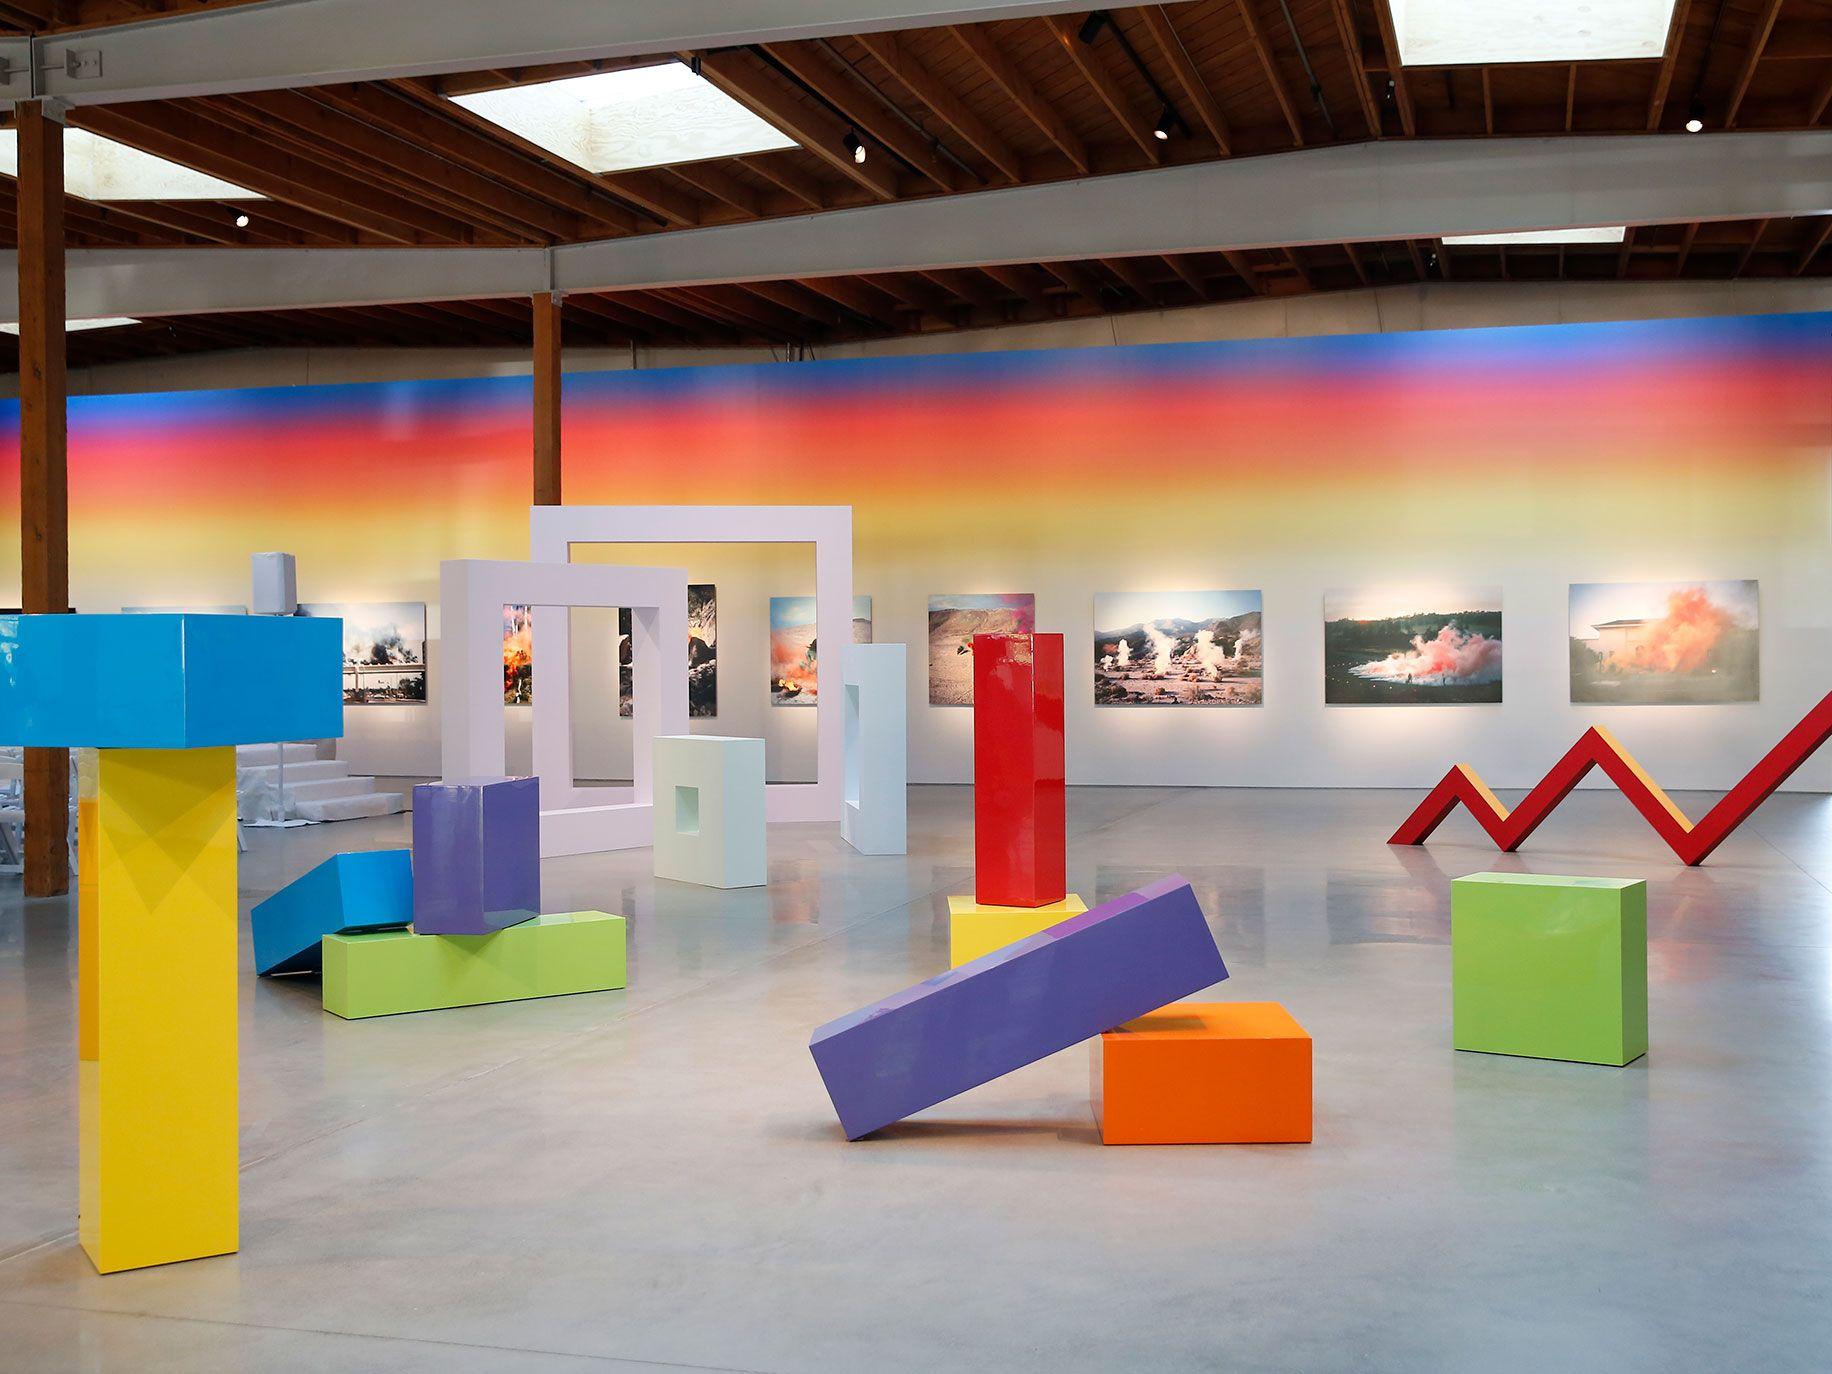 Big artwork from even bigger names graces the walls of the Jeffrey Deitch gallery in Los Angeles.